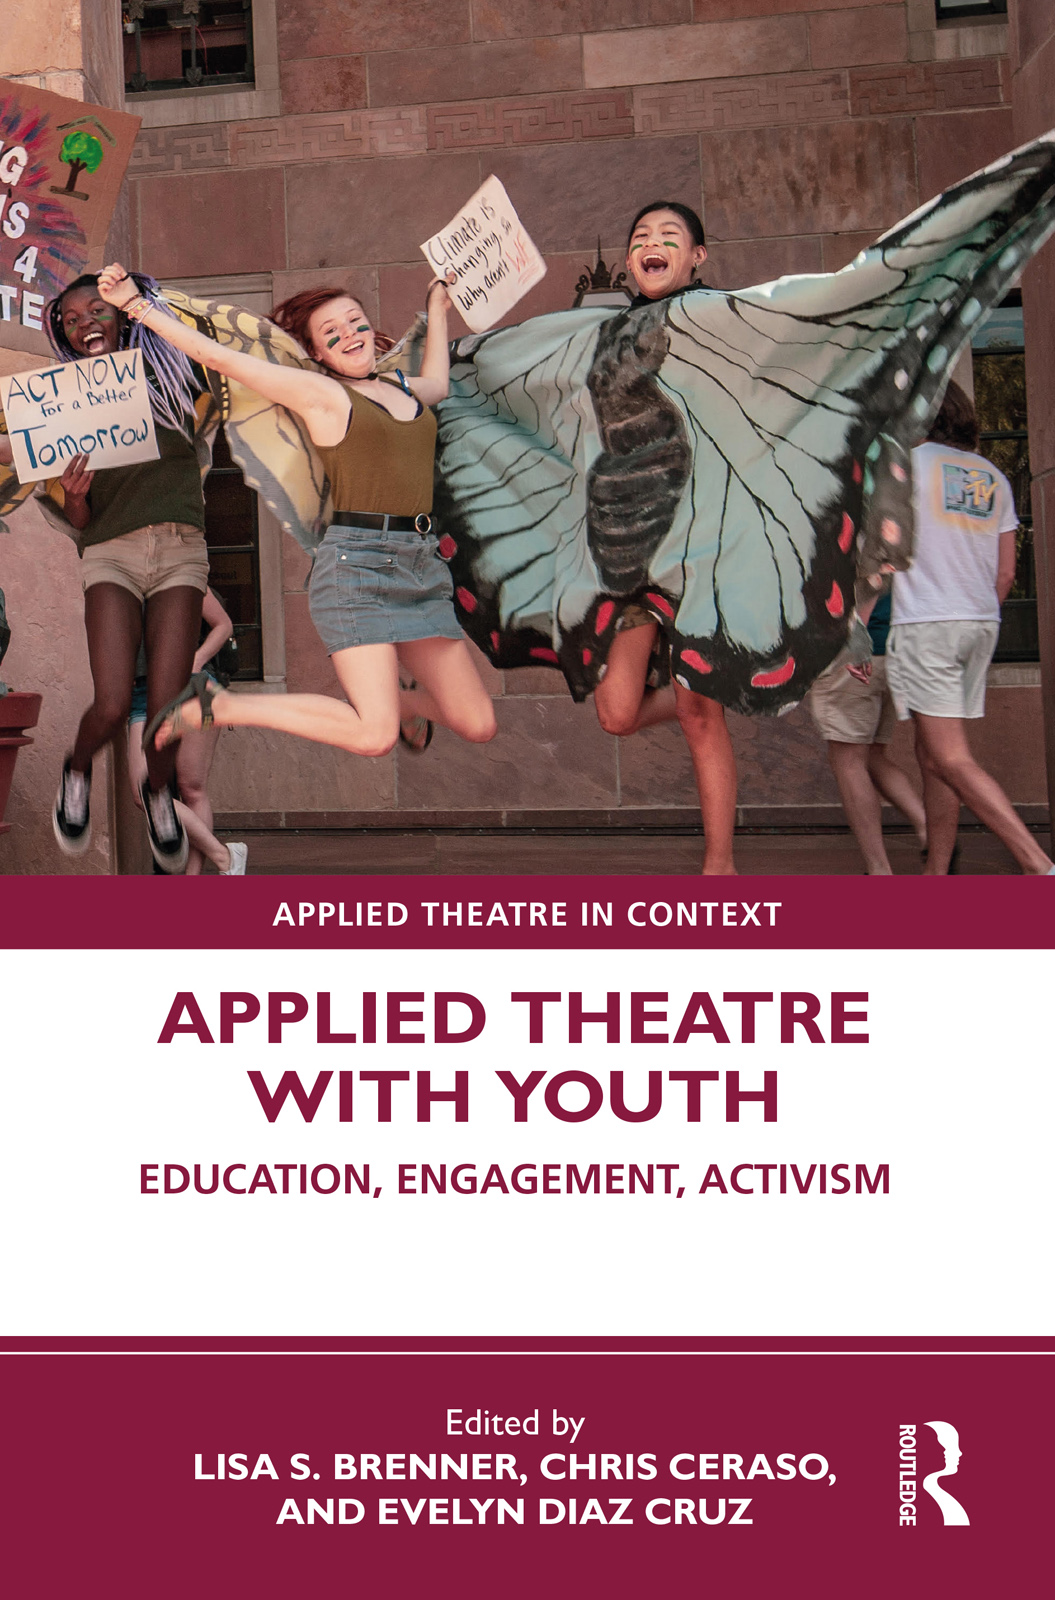 Applied Theatre with Youth